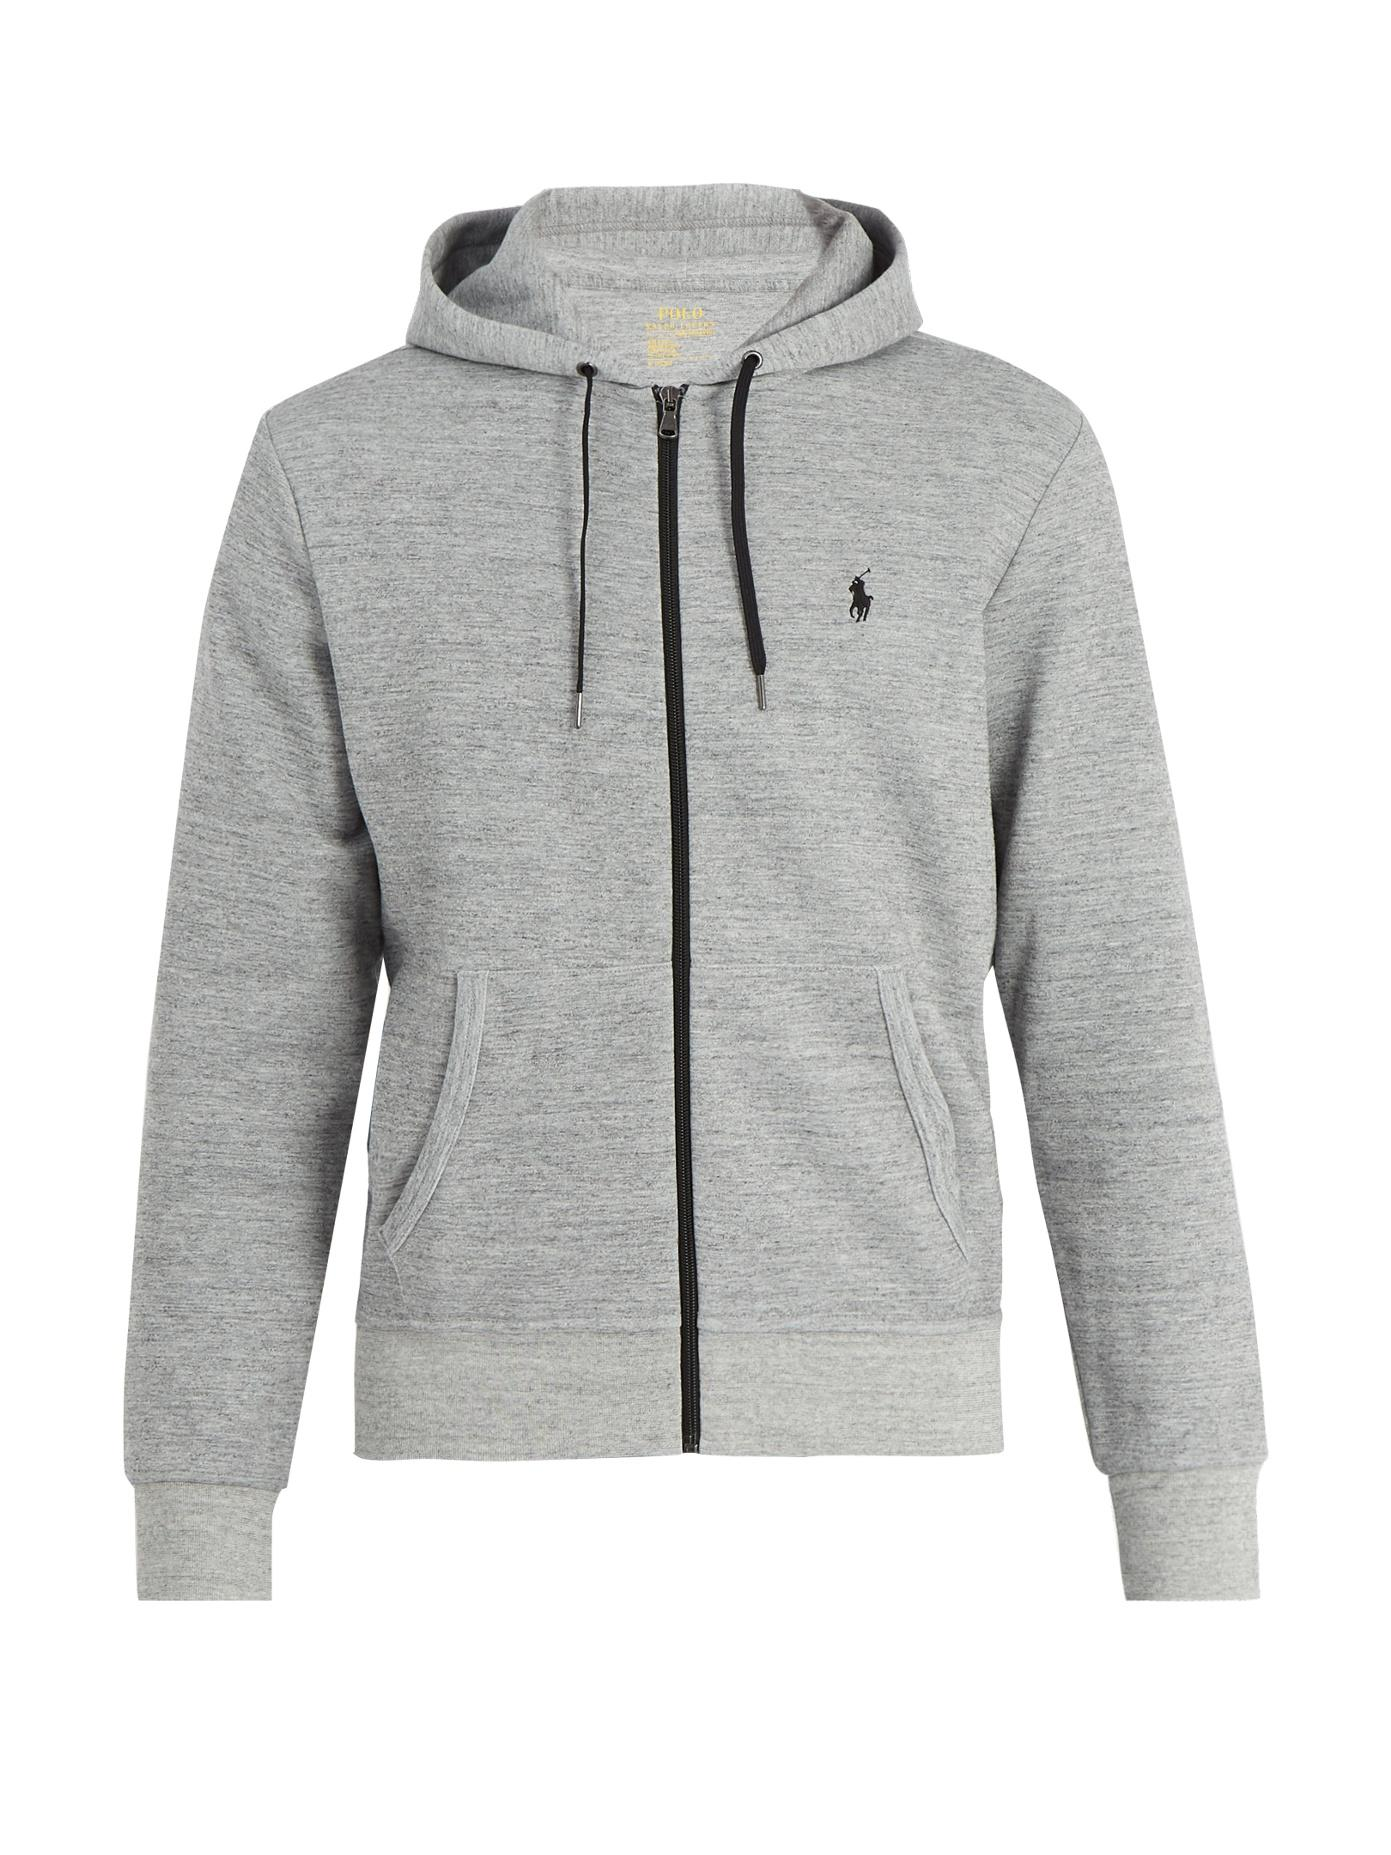 dd90be1a5 Polo Ralph Lauren Hooded Zip-Through Interlock-Jersey Sweatshirt In Grey